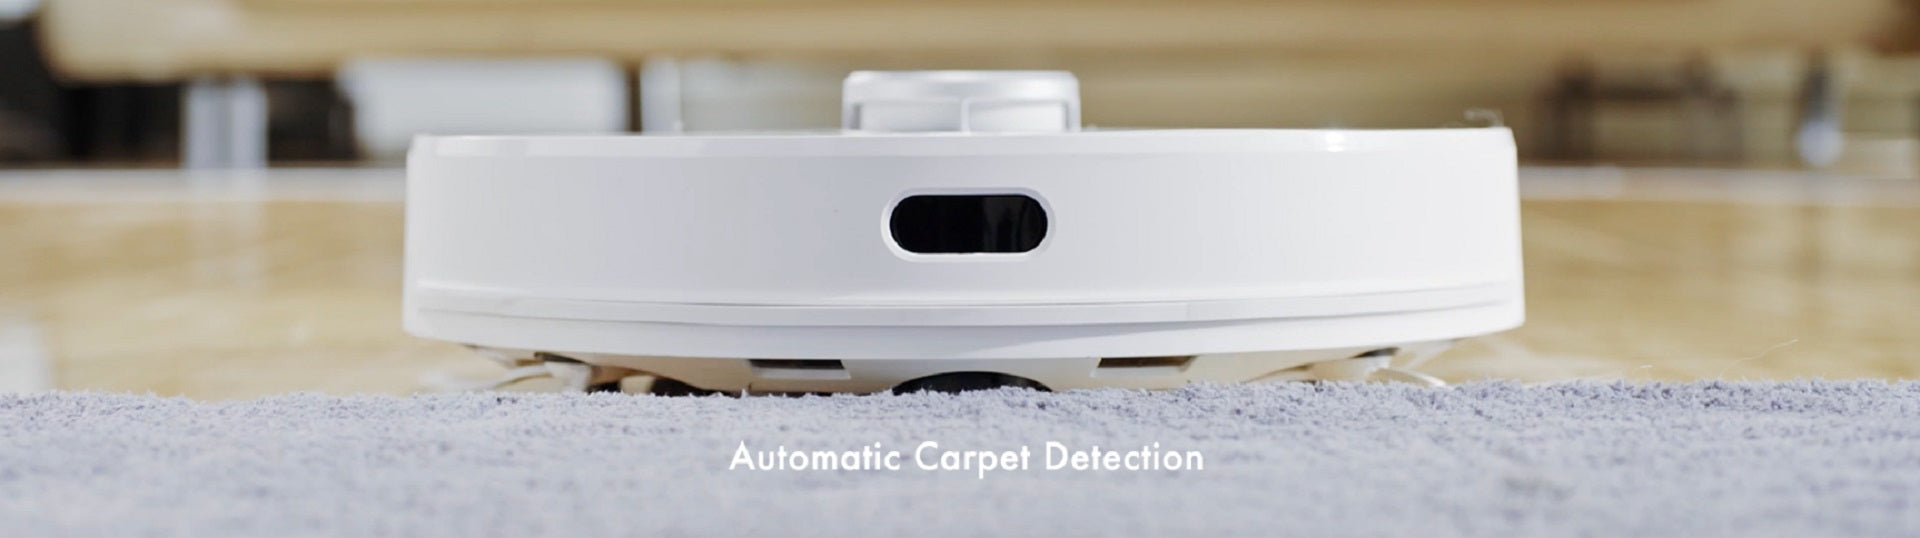 Automatic Carpet Detection